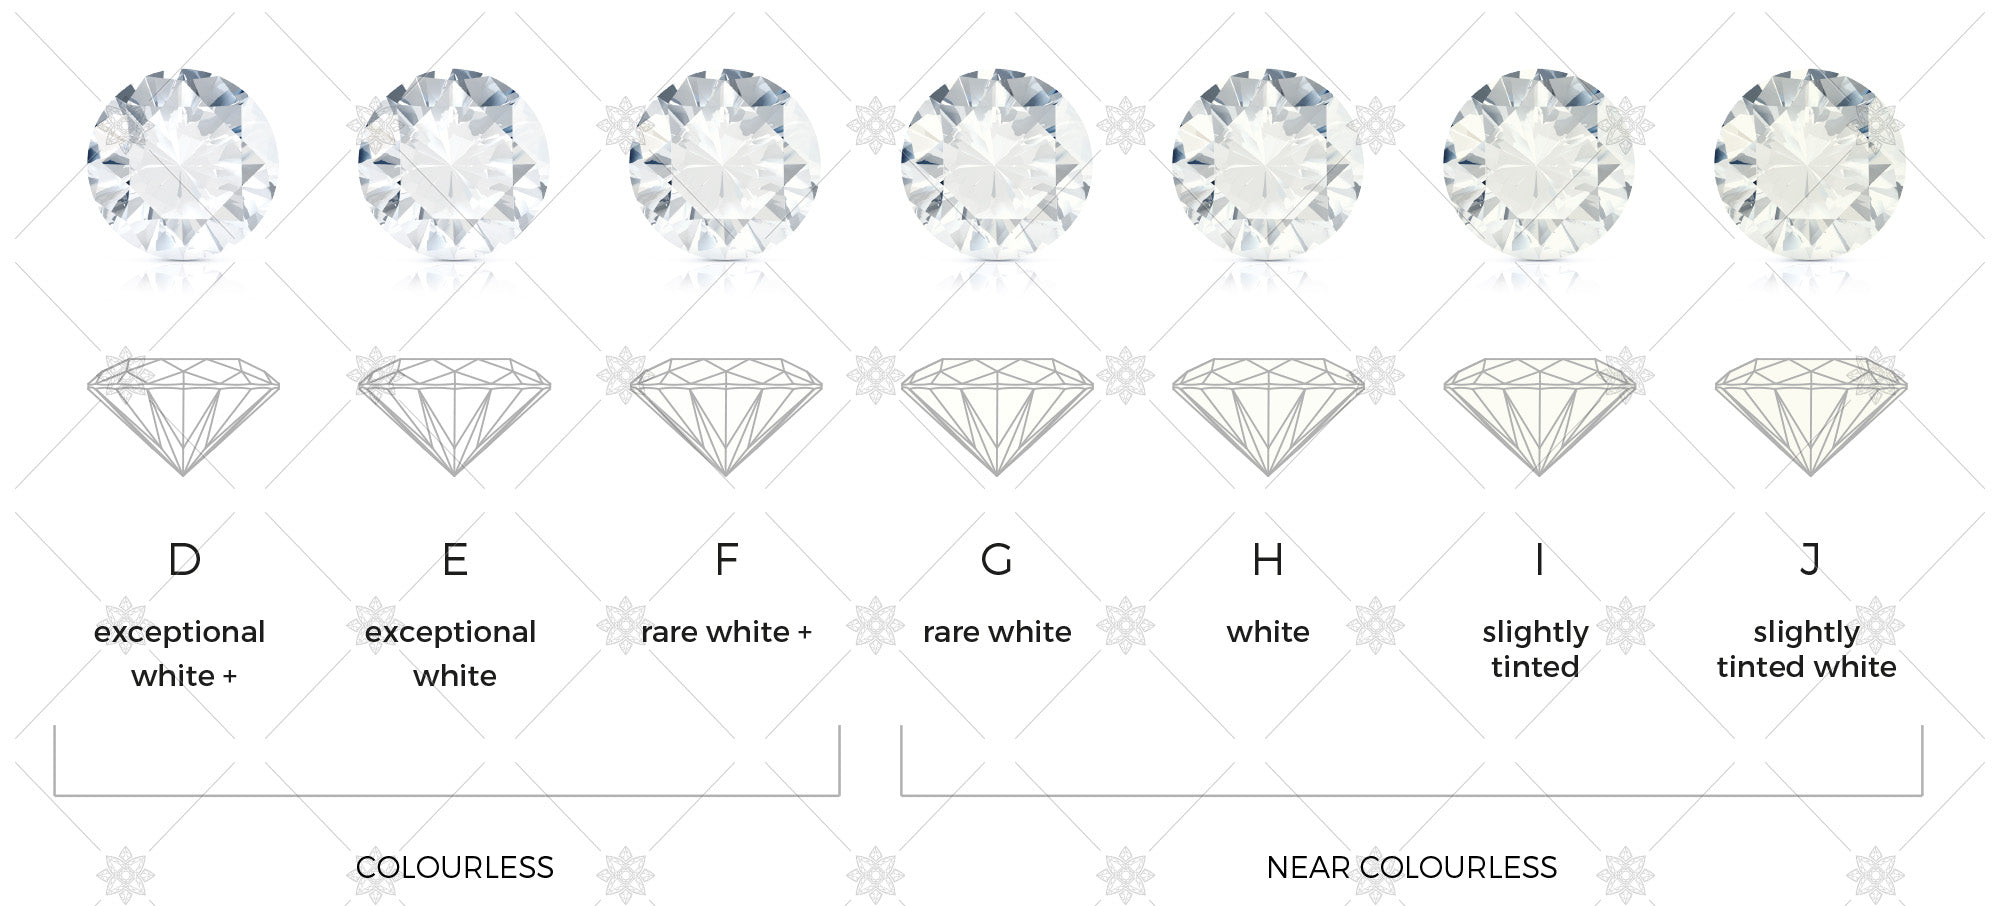 Diamond Colour - 4C's Diamond Education